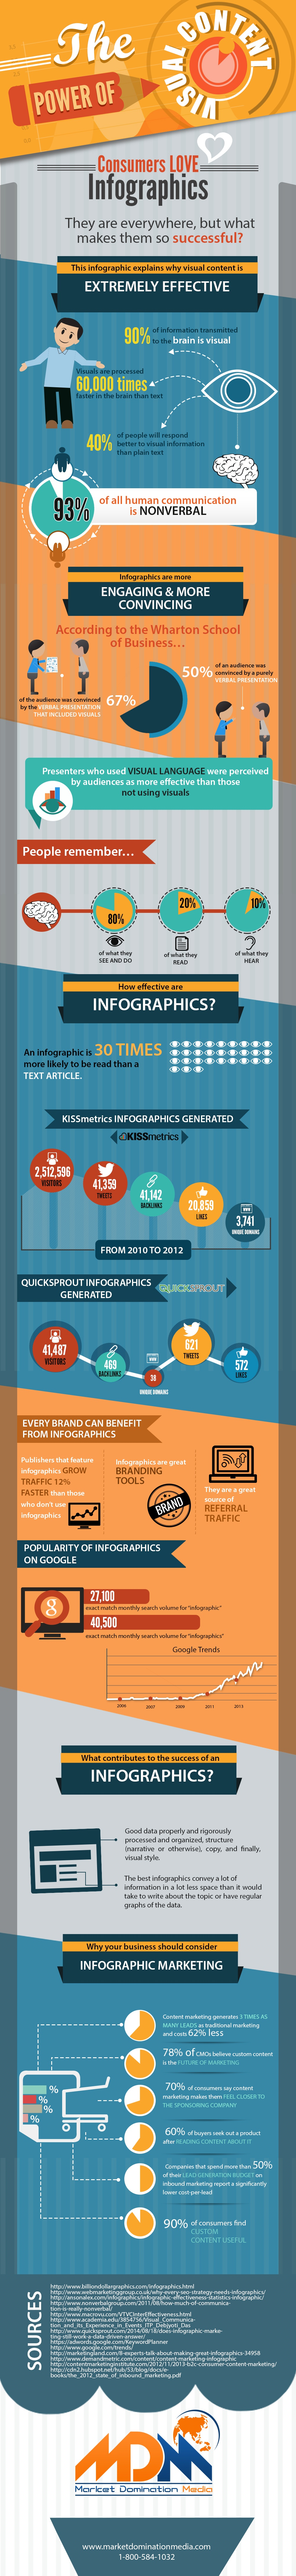 The-Power-of-Visual-Content-infographic.jpg